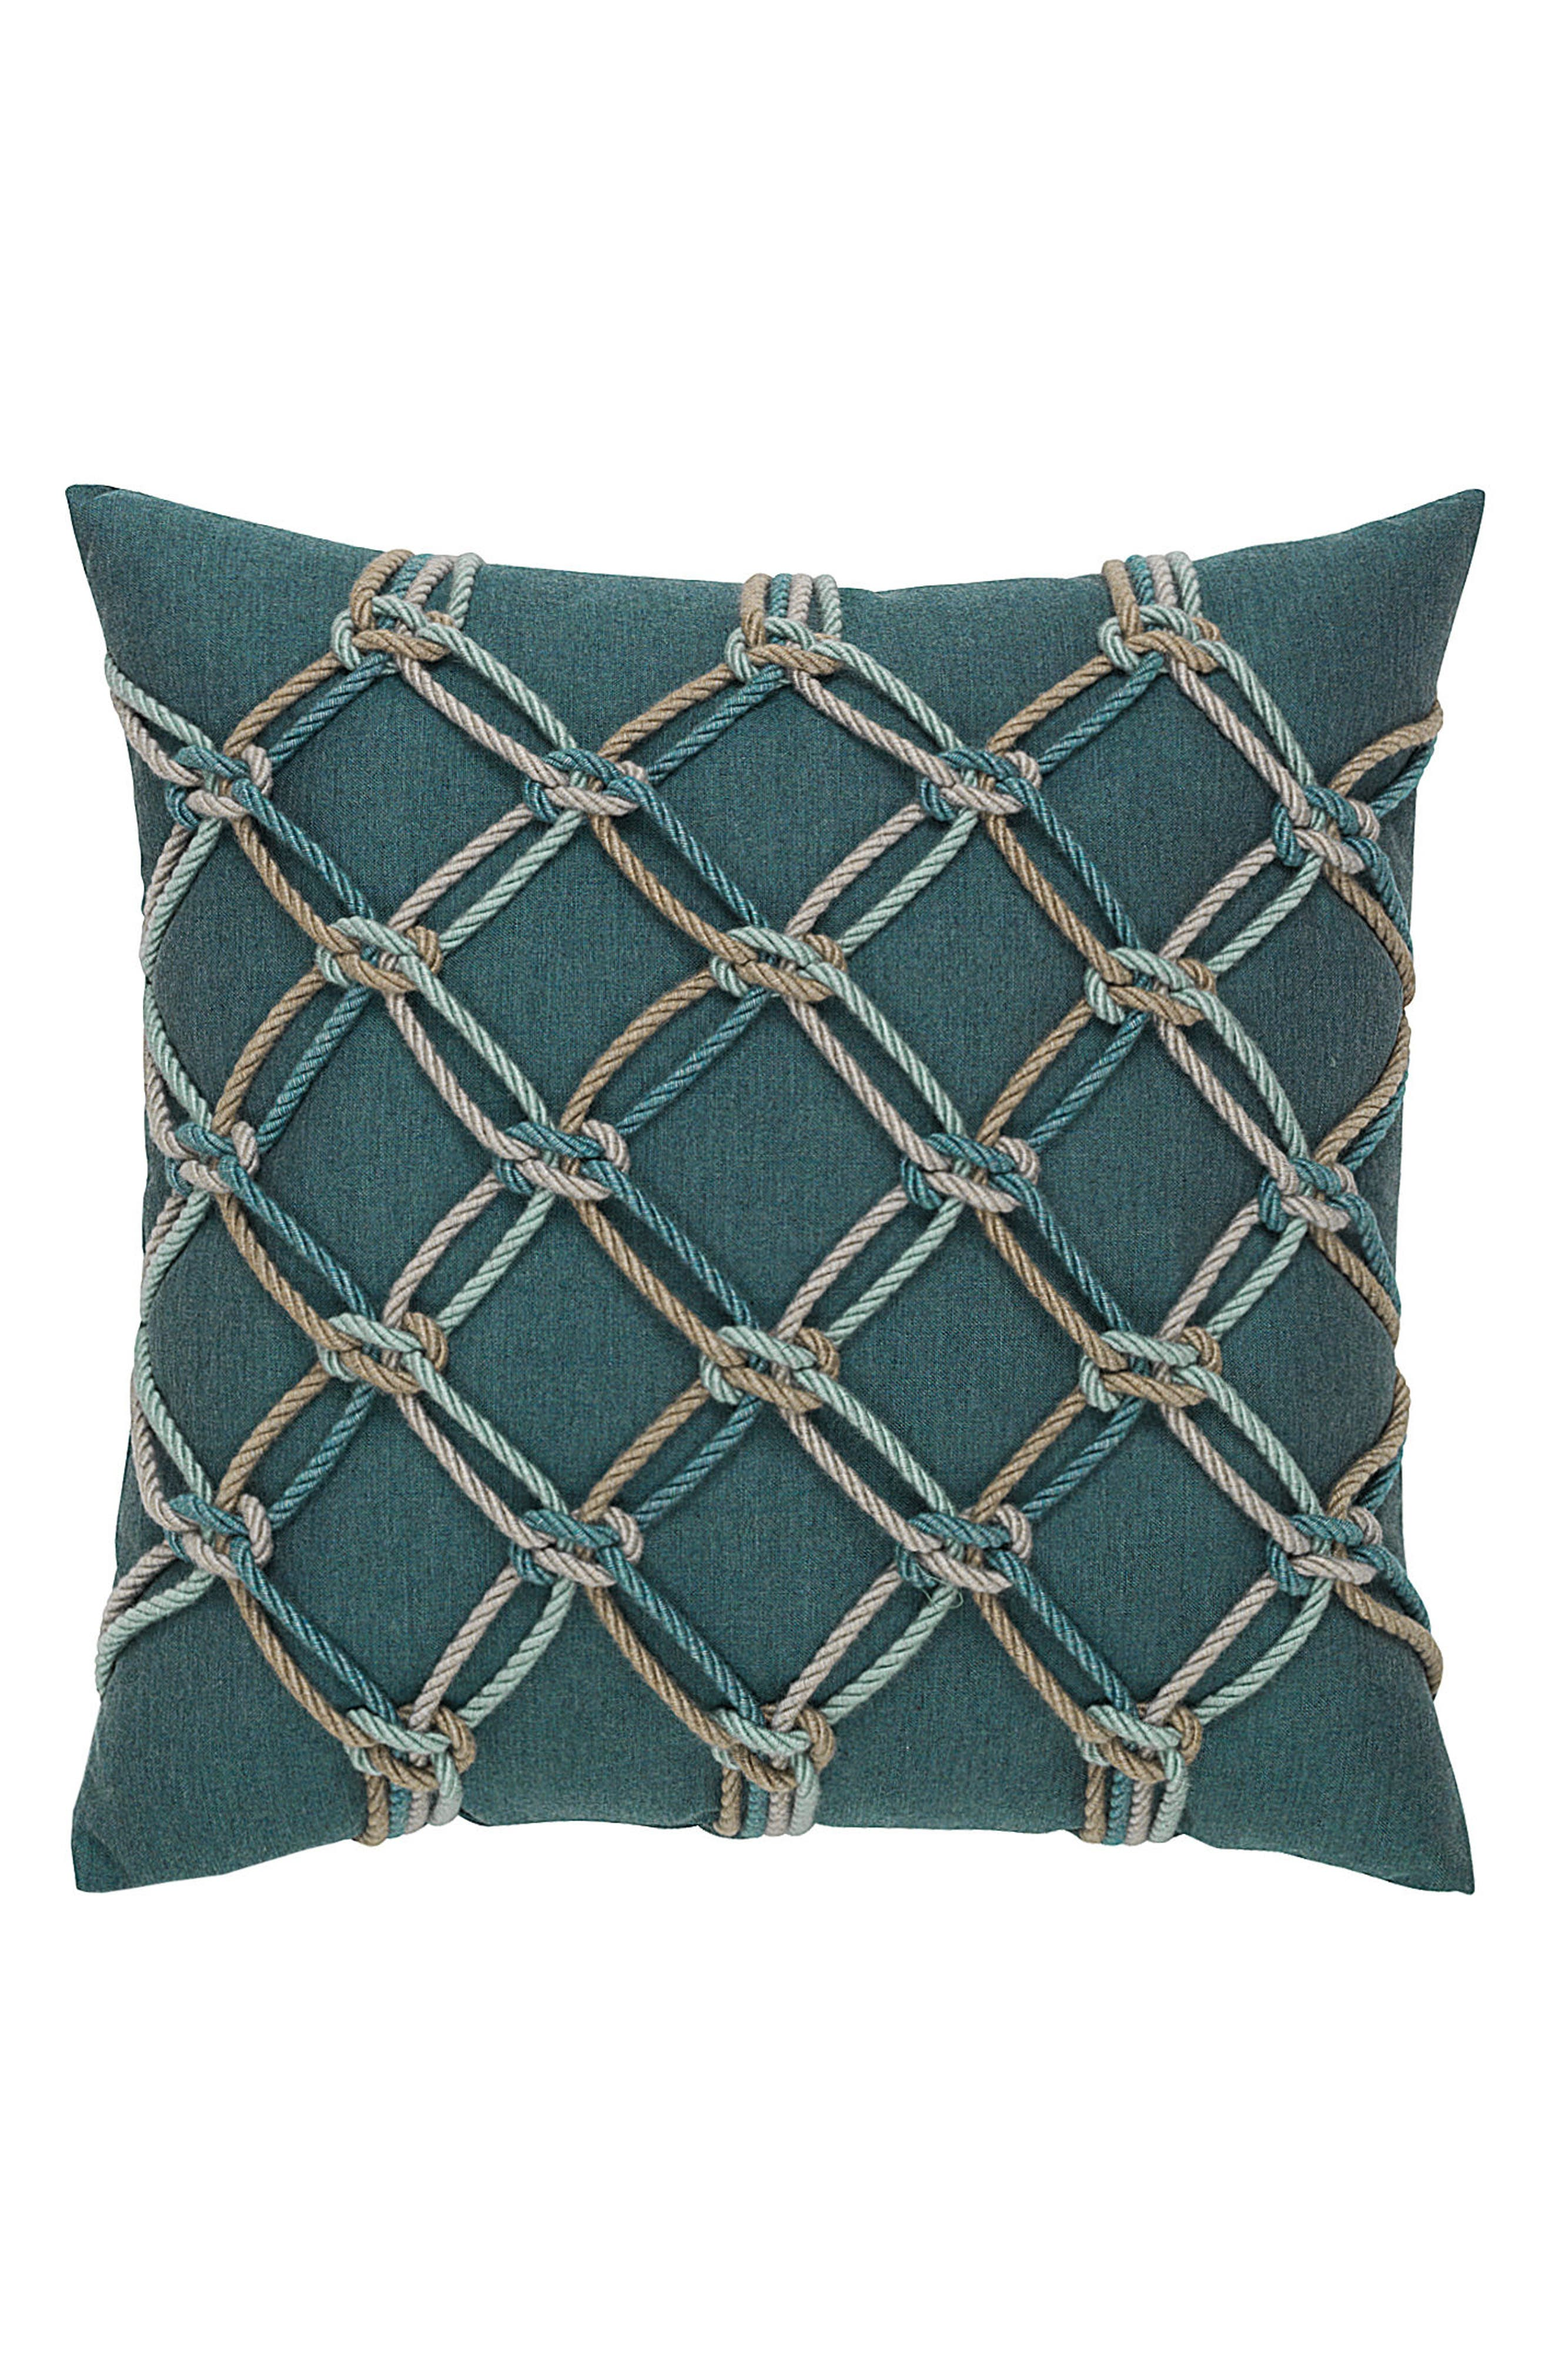 Lagoon Rope Indoor/Outdoor Accent Pillow,                         Main,                         color, 400